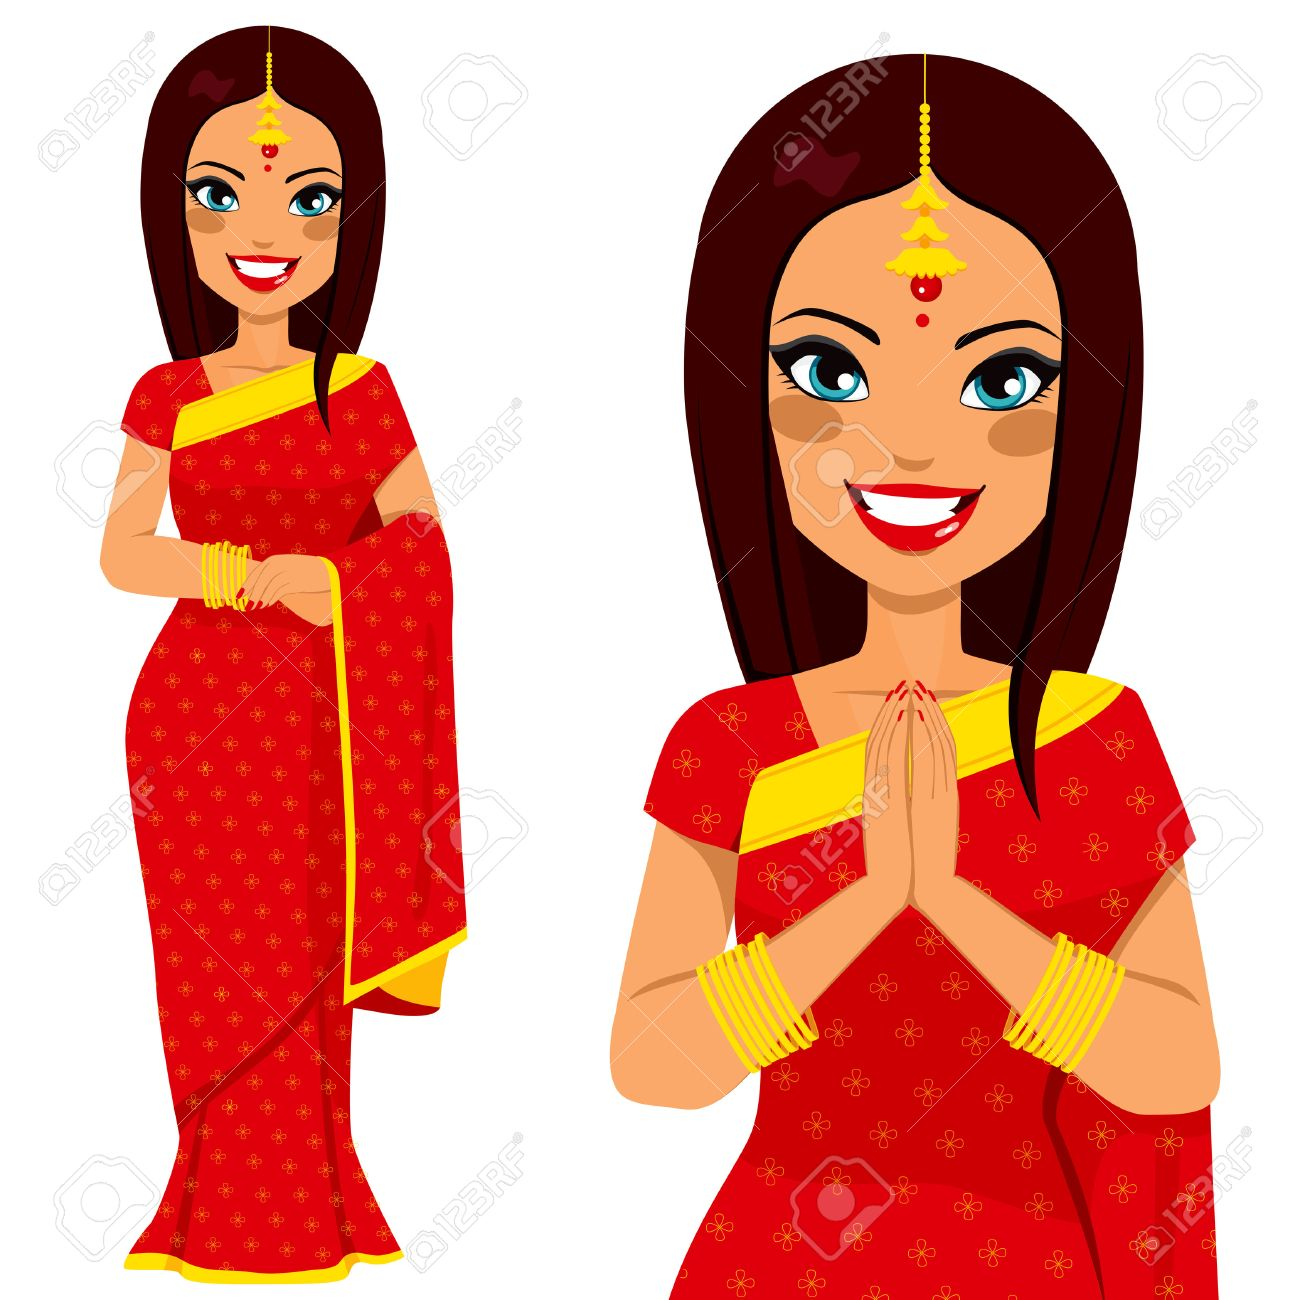 Indian lady clipart 7 » Clipart Station.